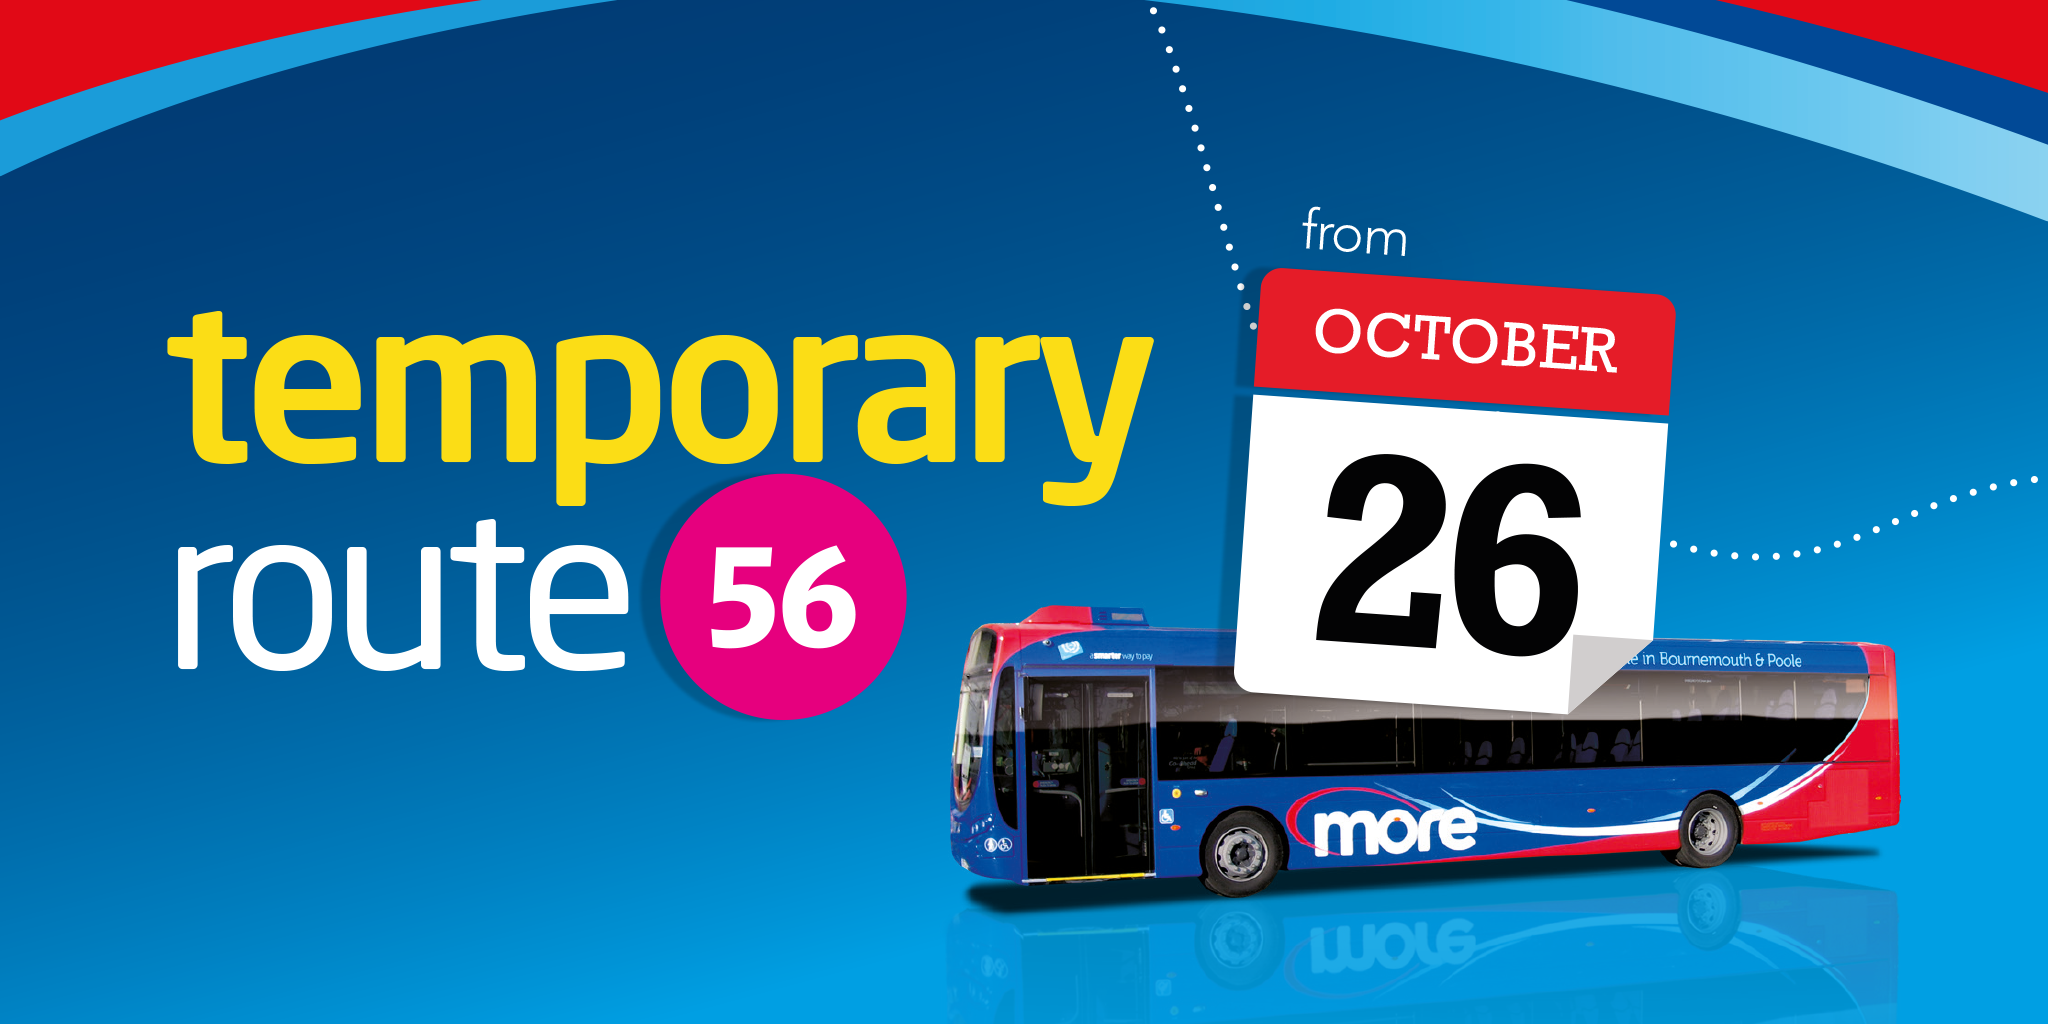 Image of a bus with text saying 'temporary route 56 from 26th October'